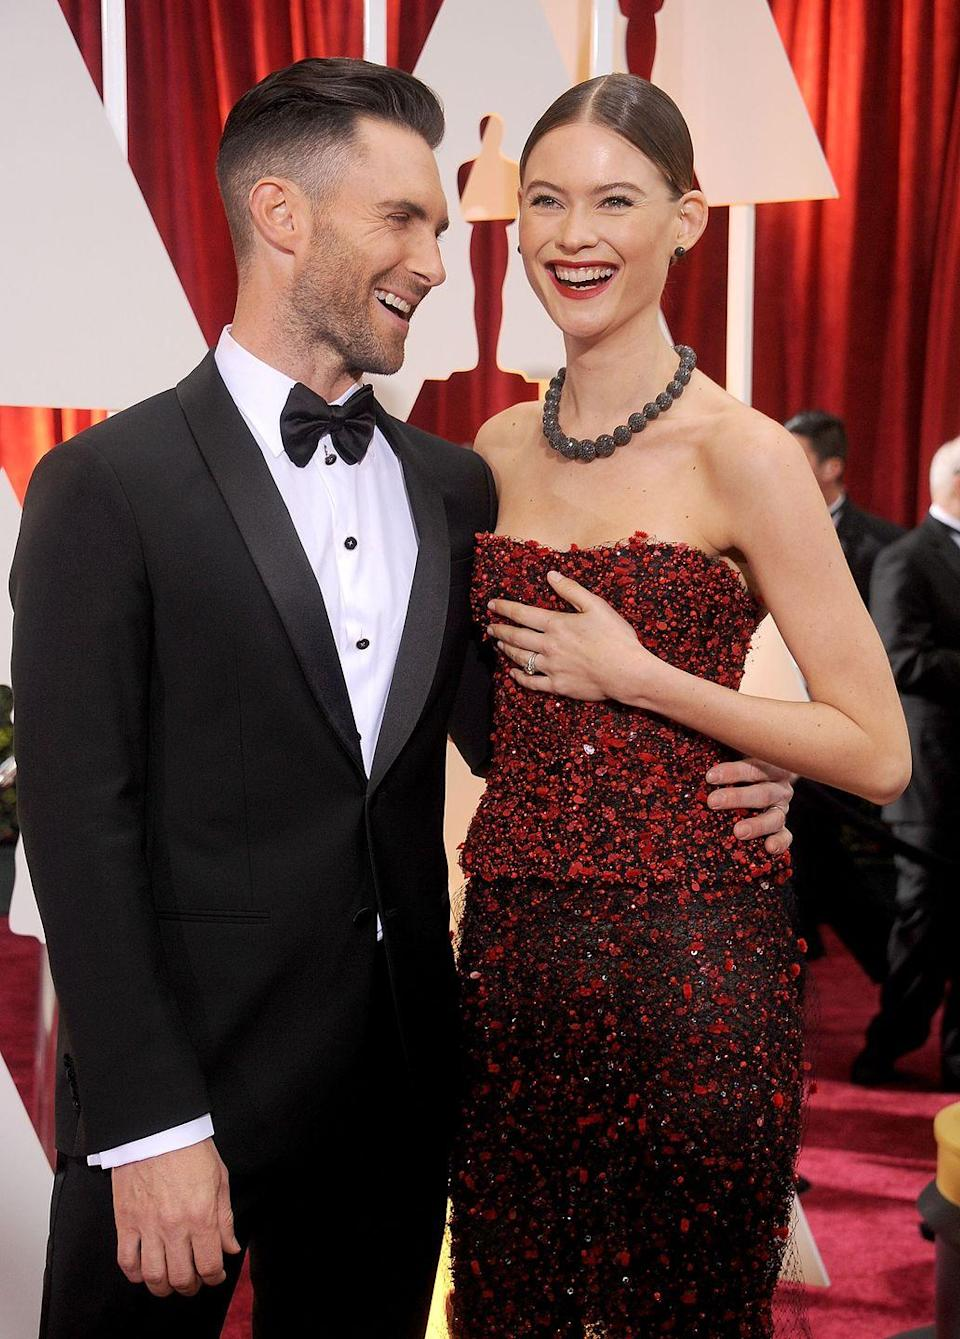 <p><strong>Age gap: </strong>10 years </p><p>Maroon 5 frontman, Adam Levine, 40, and his Victoria's Secret model wife, Behati Prinsloo, 31, have been married since 2014 and welcomed two daughters, Dusty Rose and Gio Grace, in 2016 and 2018. </p>